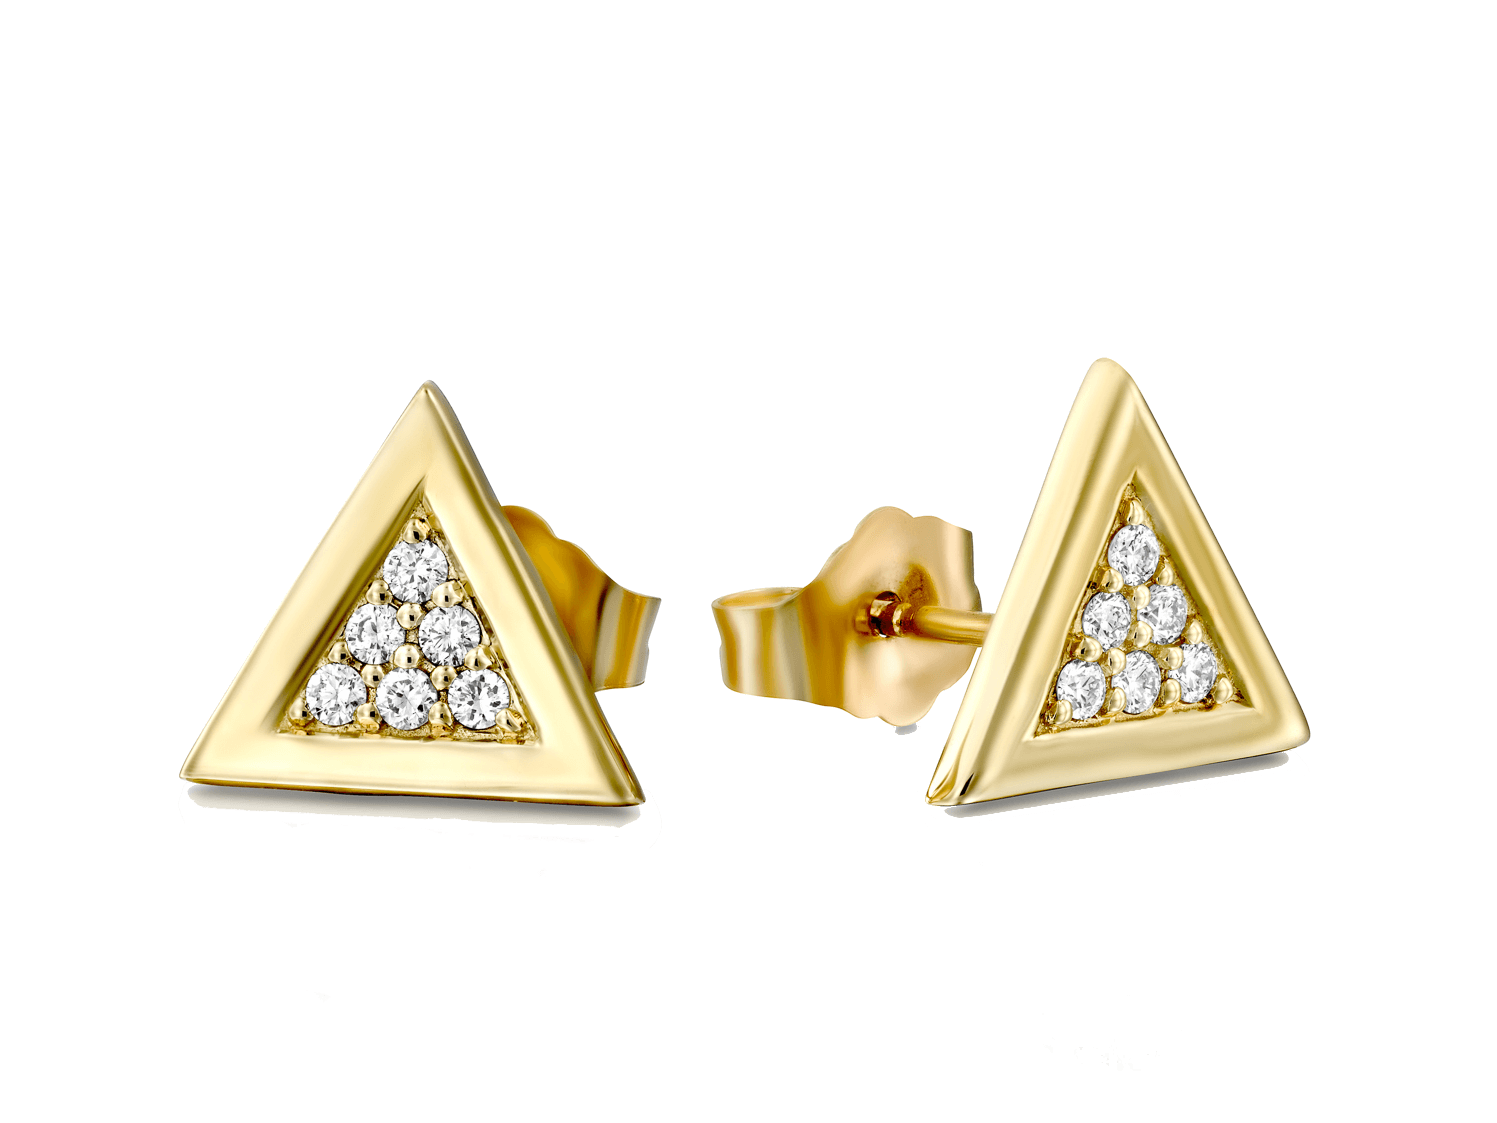 Diamond Earrings catagory 4x3